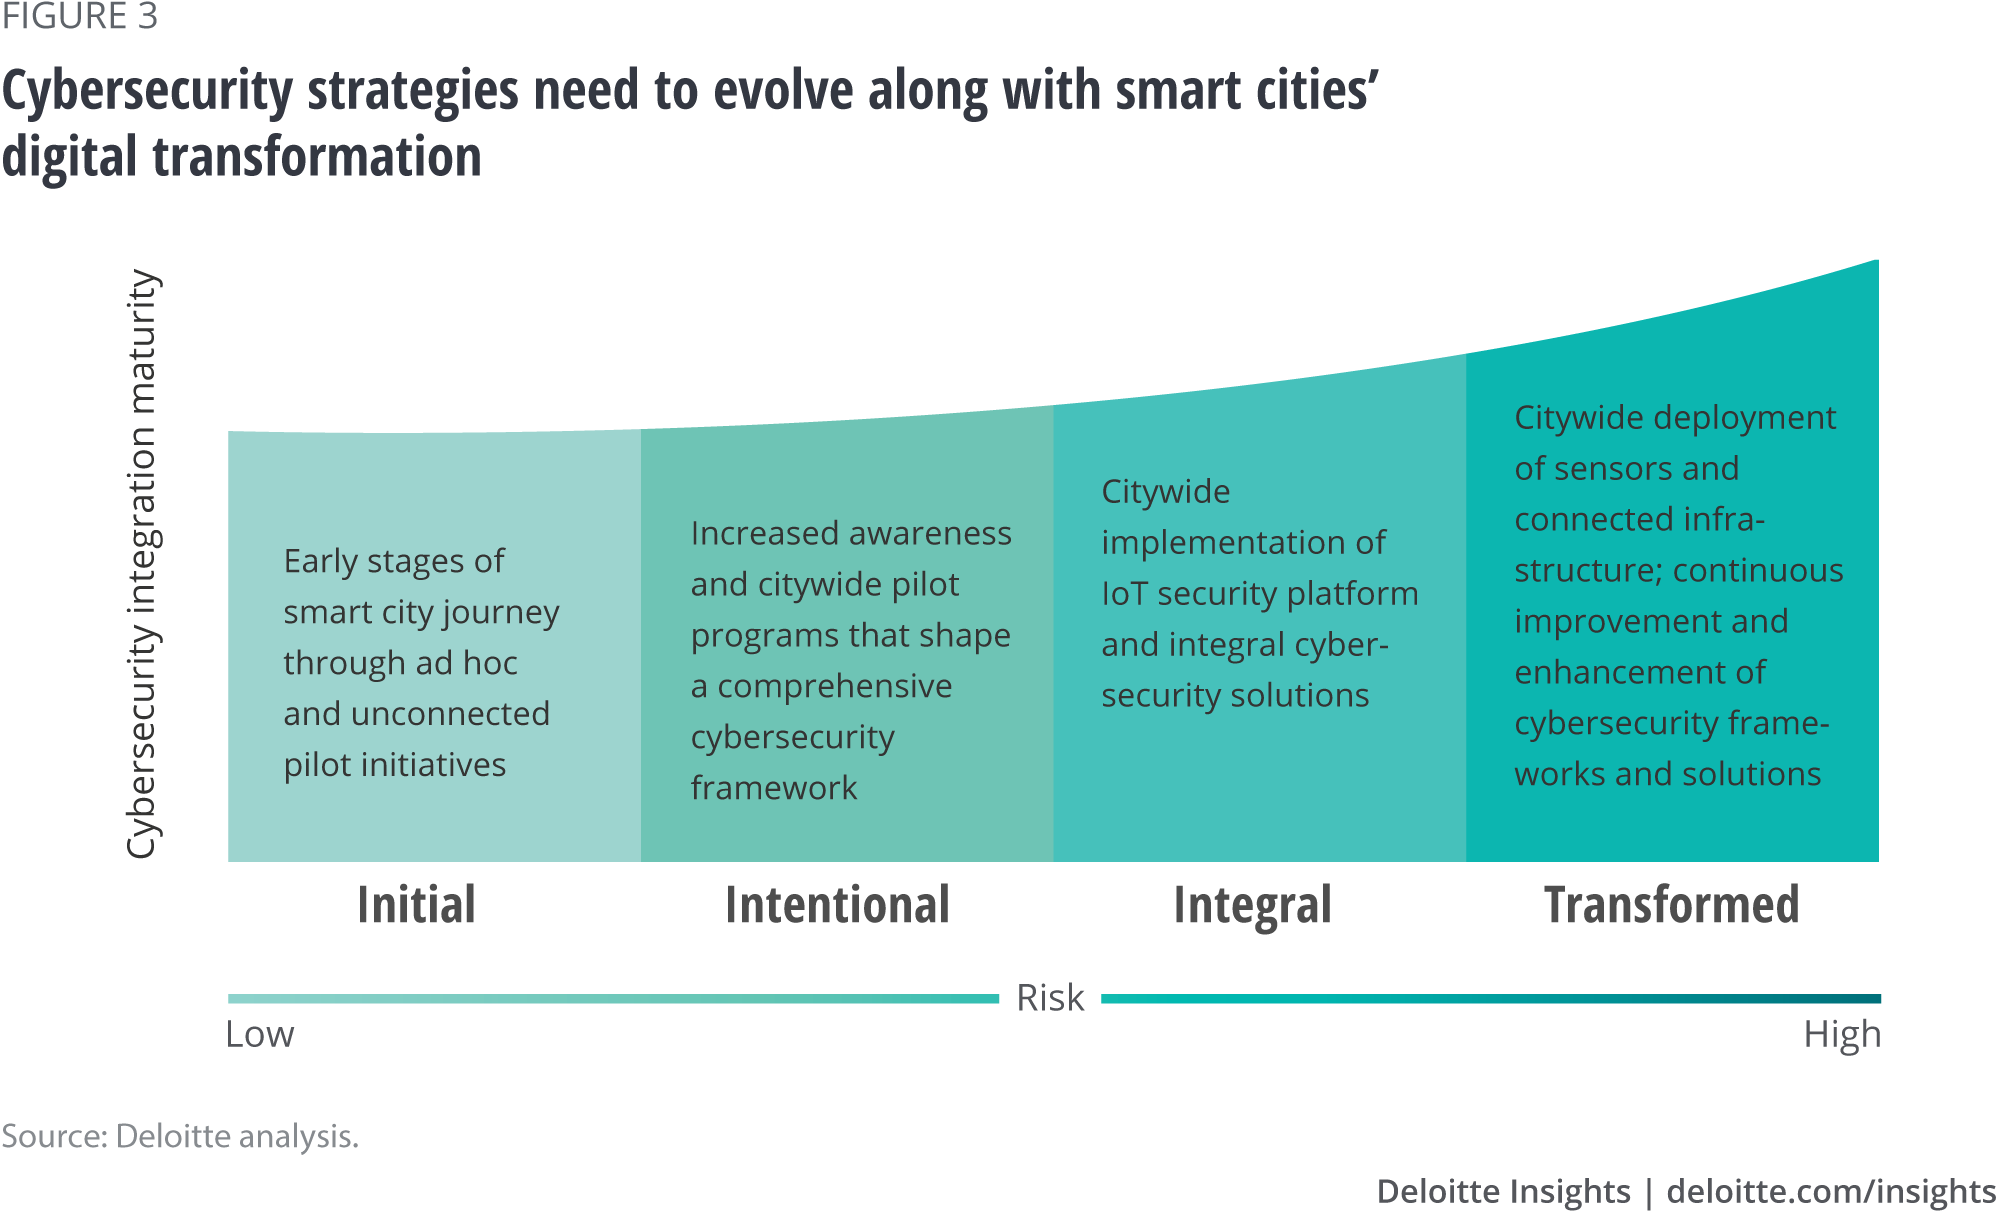 Cybersecurity strategies need to evolve along with smart cities' digital transformation